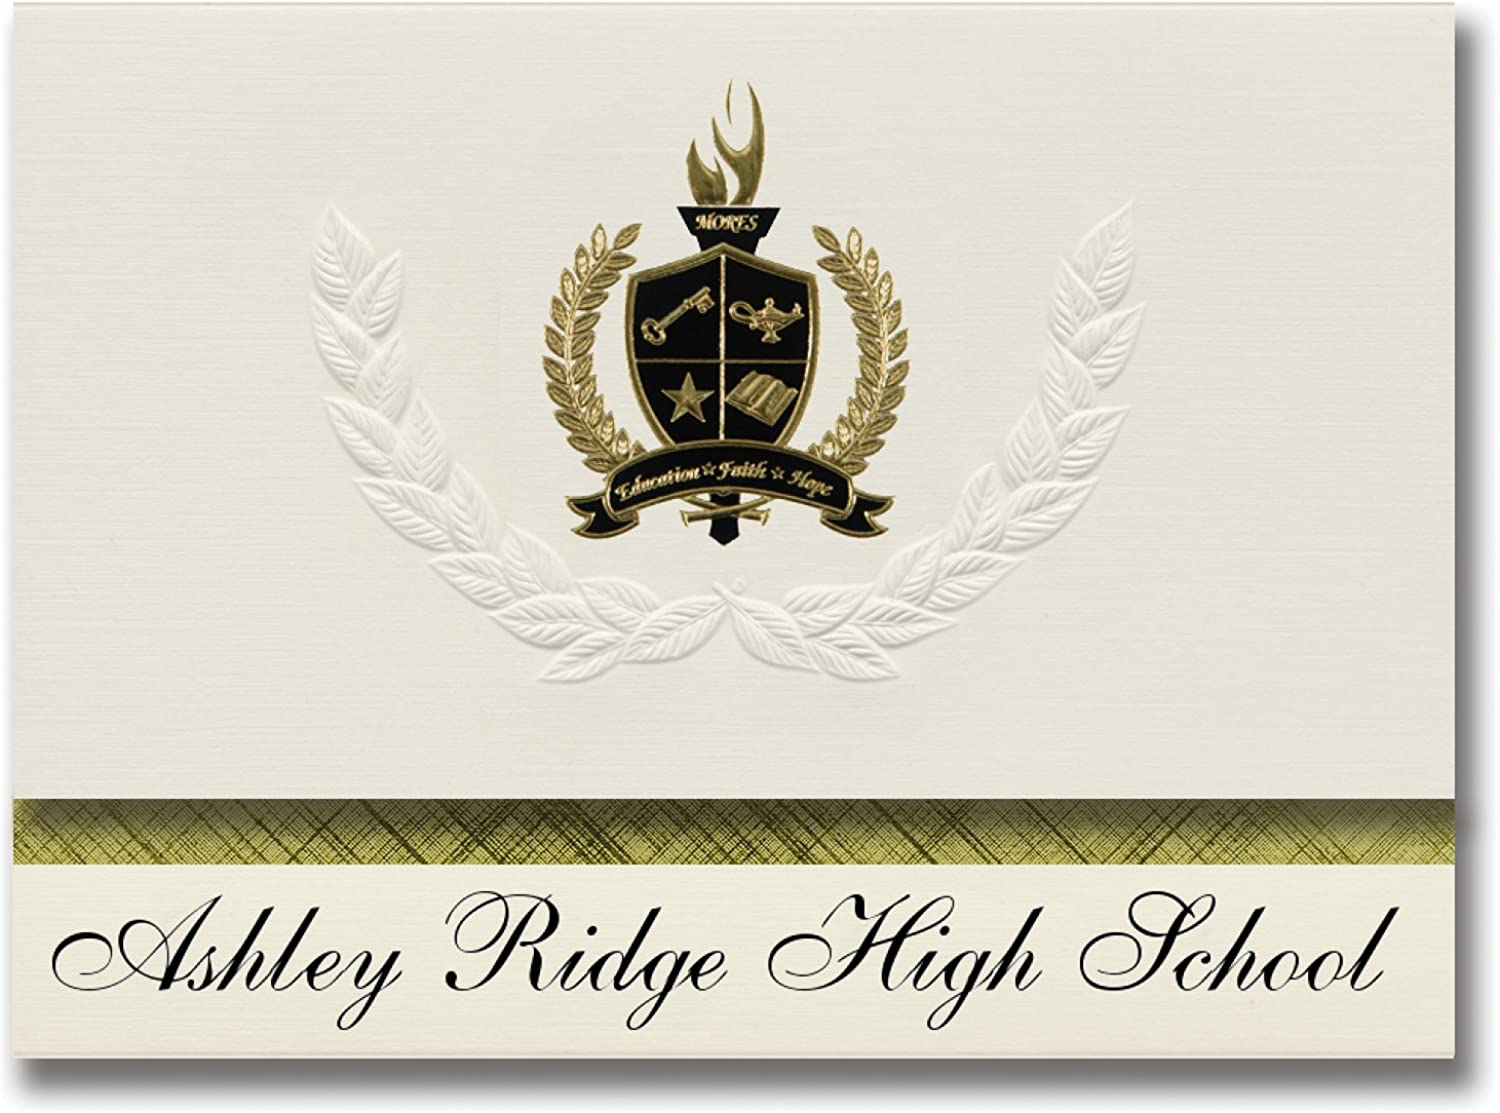 Signature Ankündigungen Ashley Ridge High High High School (Summerville, SC) Graduation Ankündigungen, Presidential Stil, Elite Paket 25 Stück mit Gold & Schwarz Metallic Folie Dichtung B078VCYDVR   | Mode-Muster